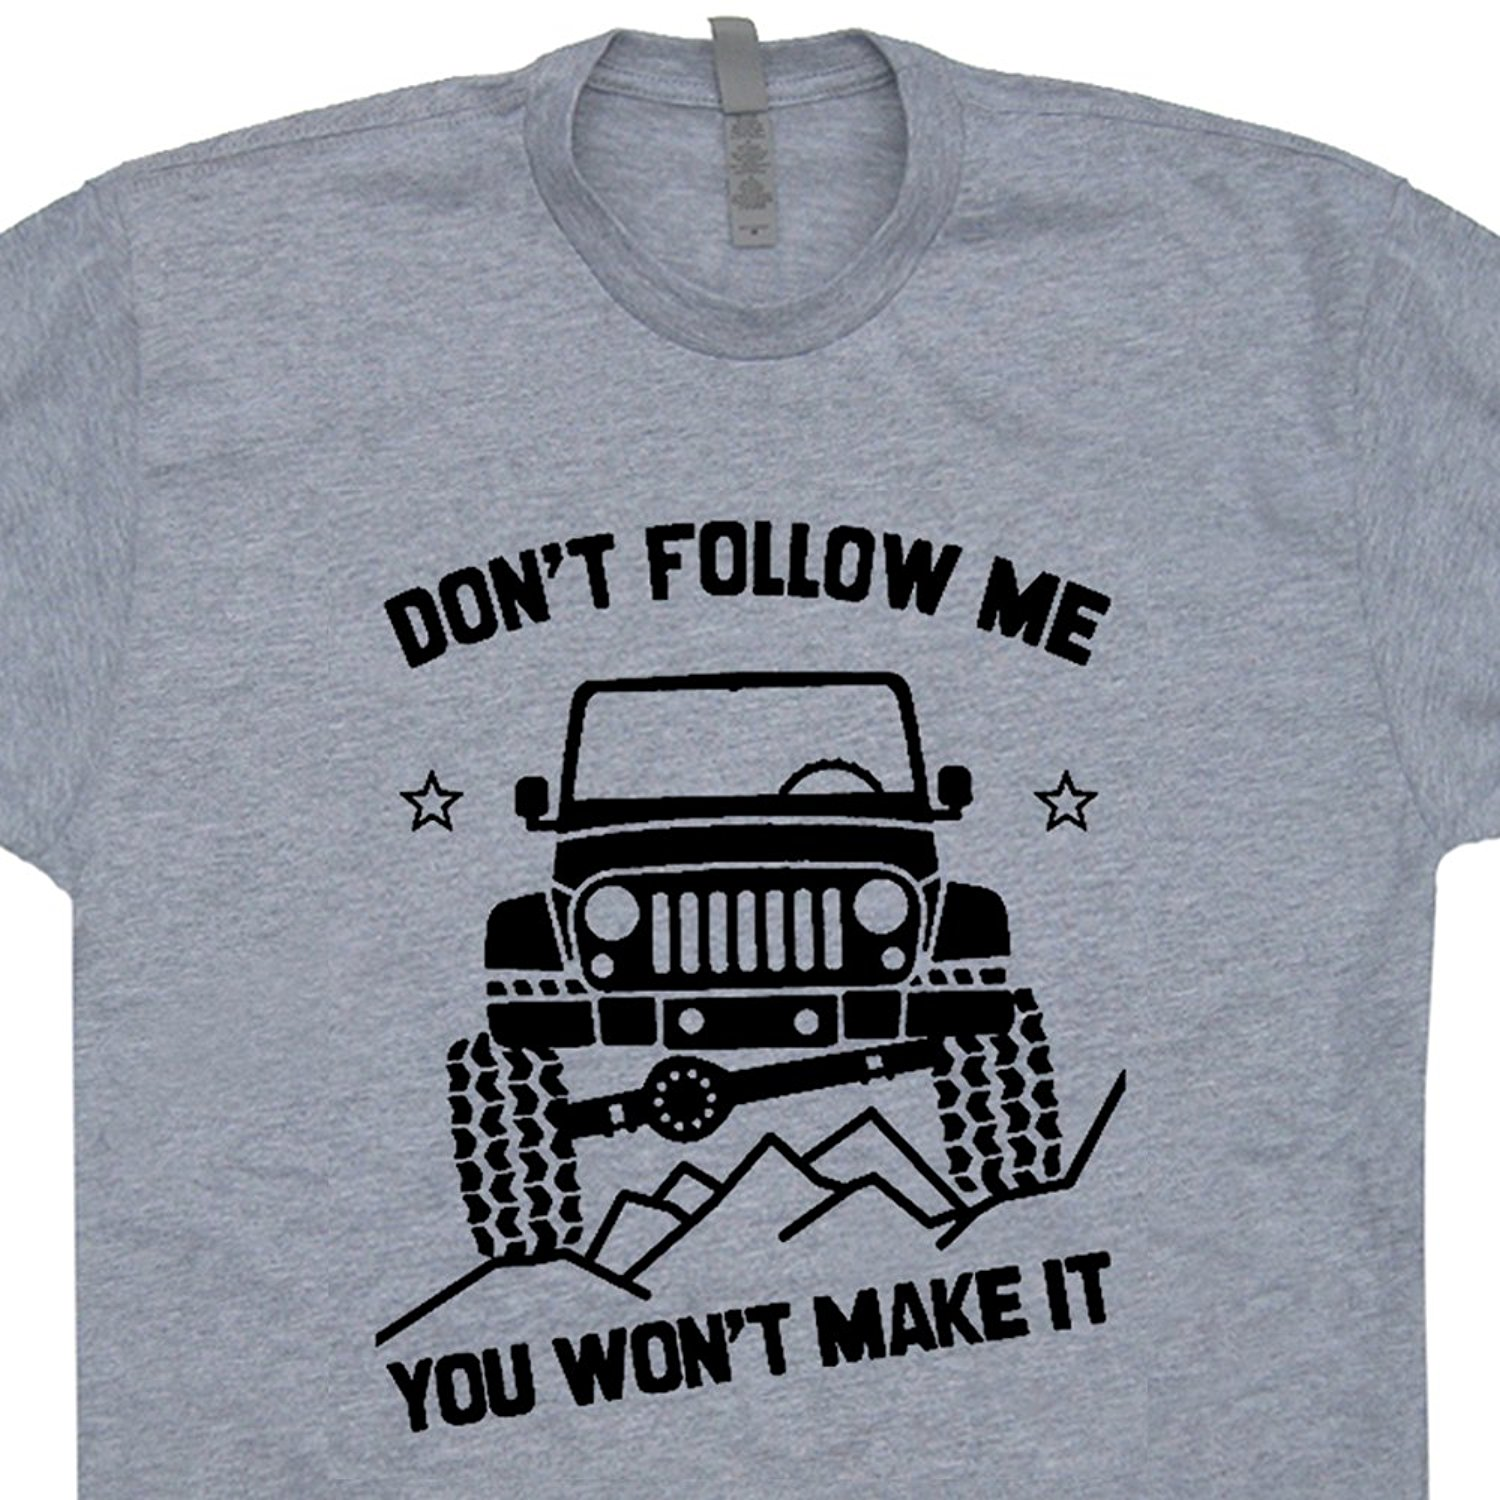 Jeep T Shirt T Shirts Design Concept - Jeep t shirt design